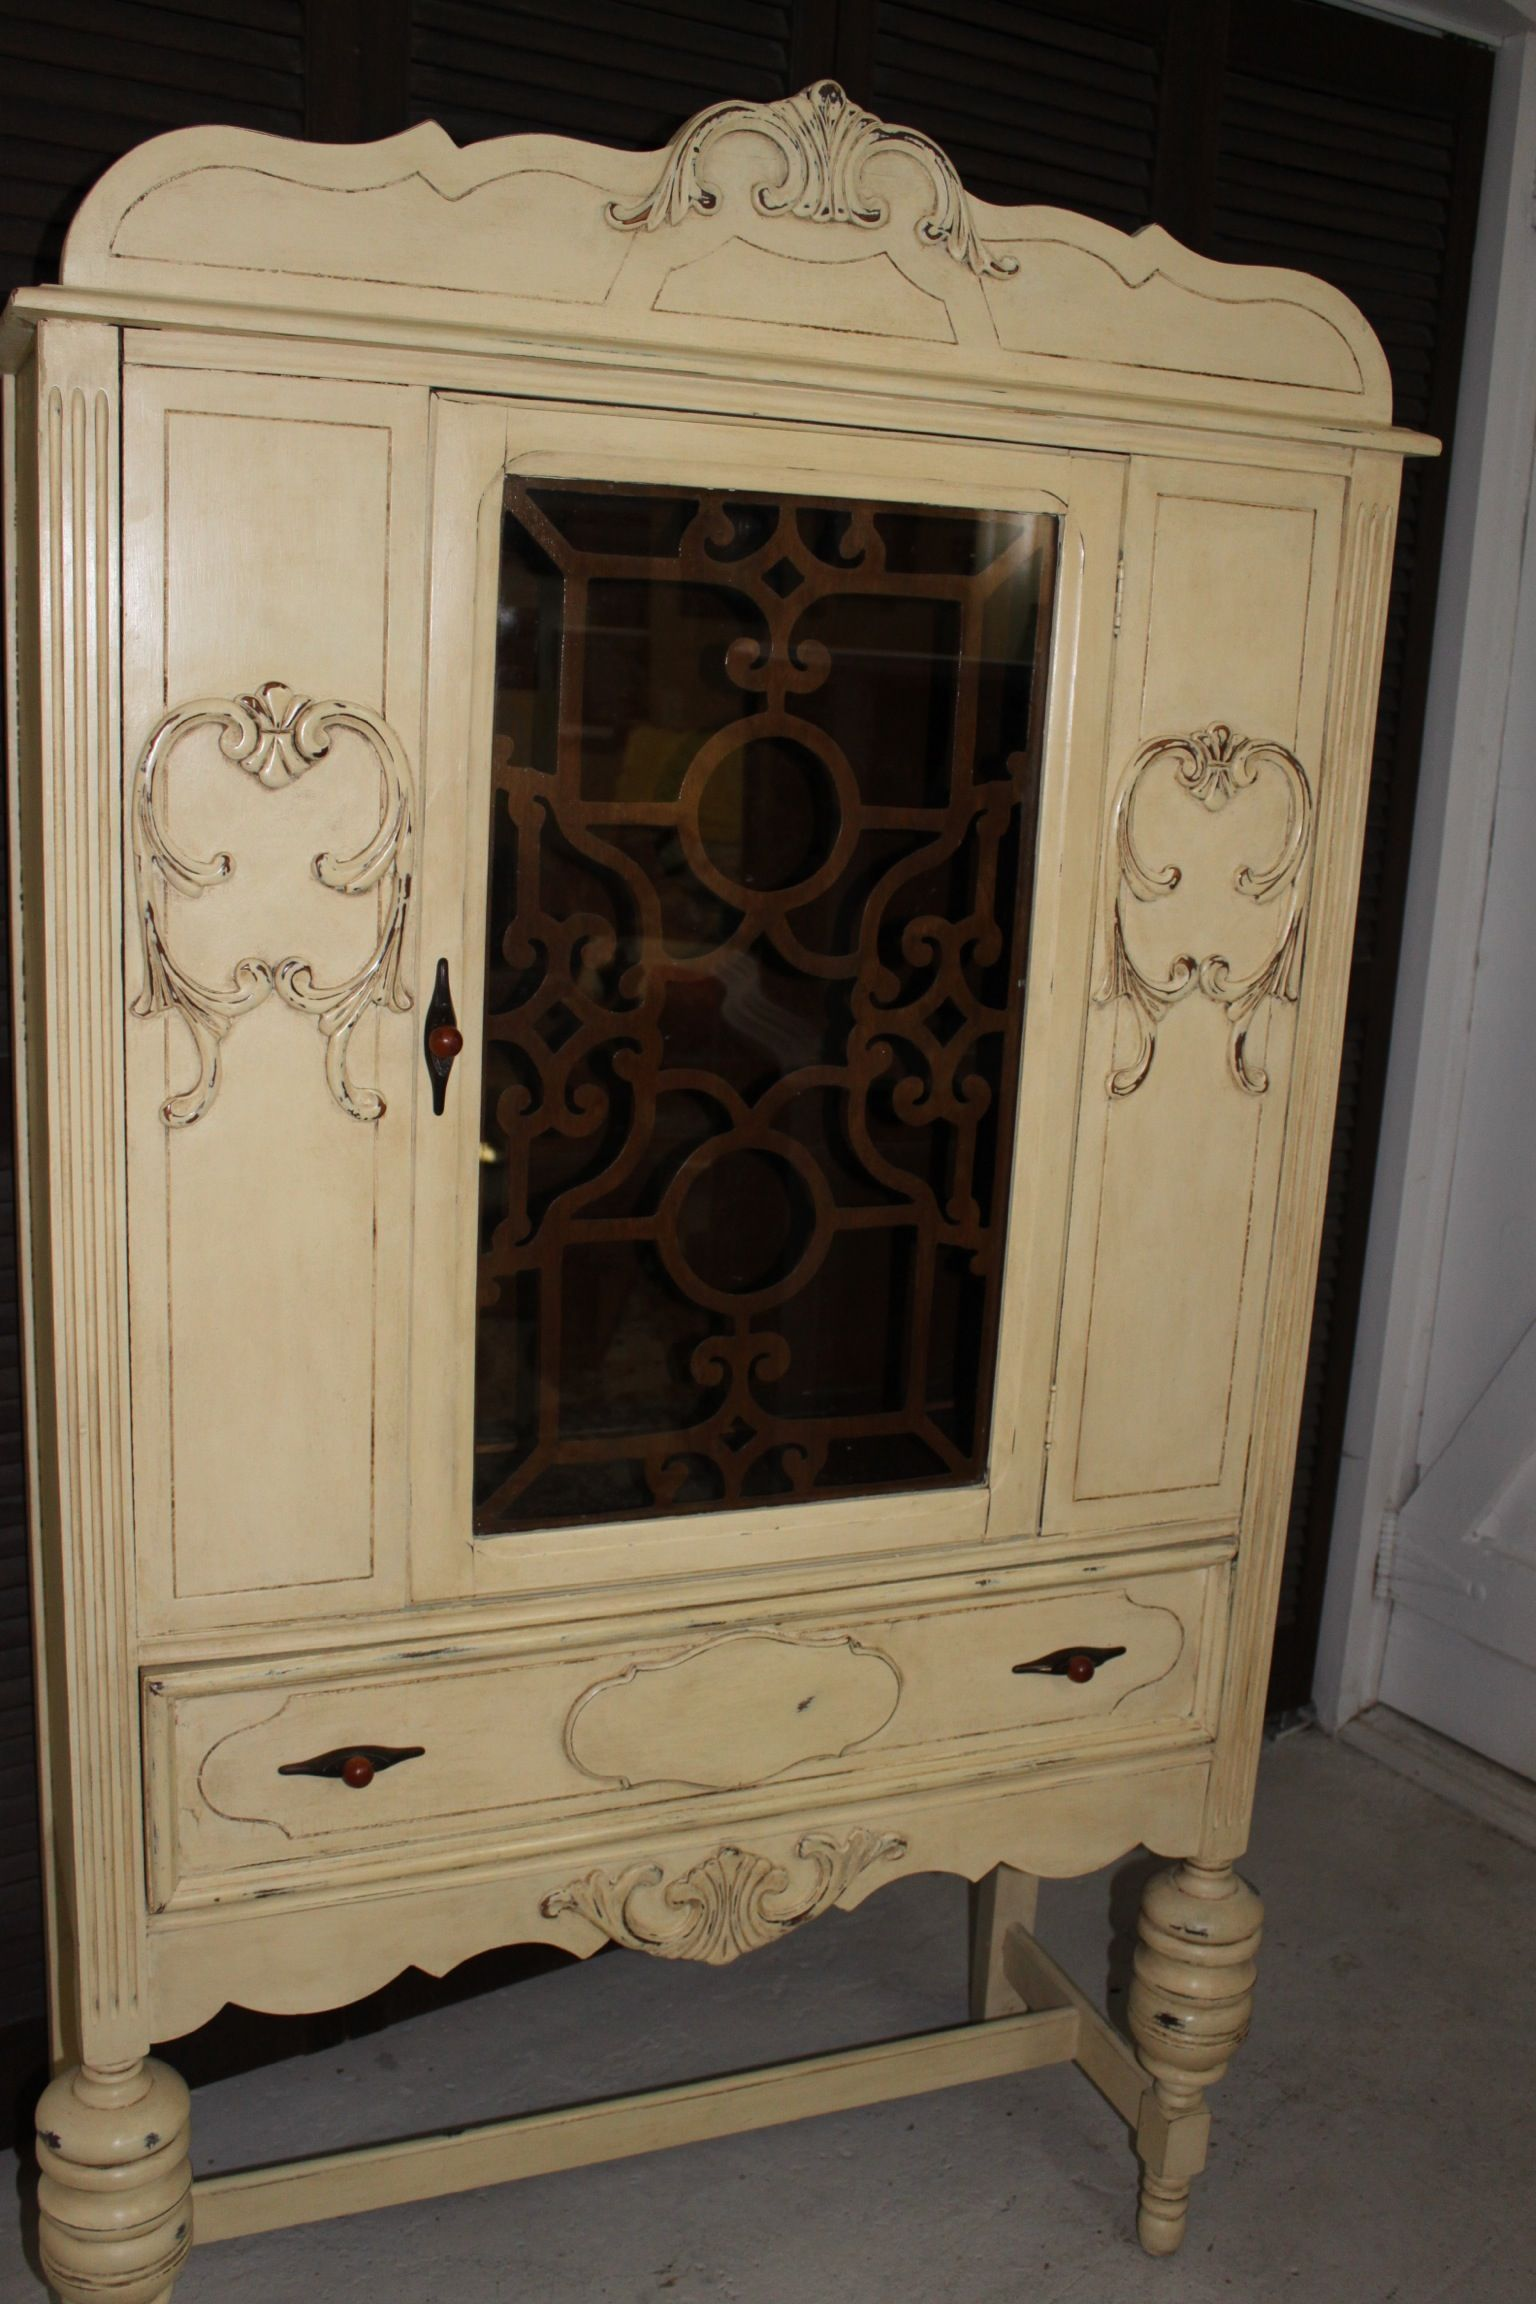 Antique China Cabinet I Painted With Annie Sloan Chalk Paint In Cream With Clear And Dark Wax Antique China Cabinets Chalk Furniture Painted China Cabinets